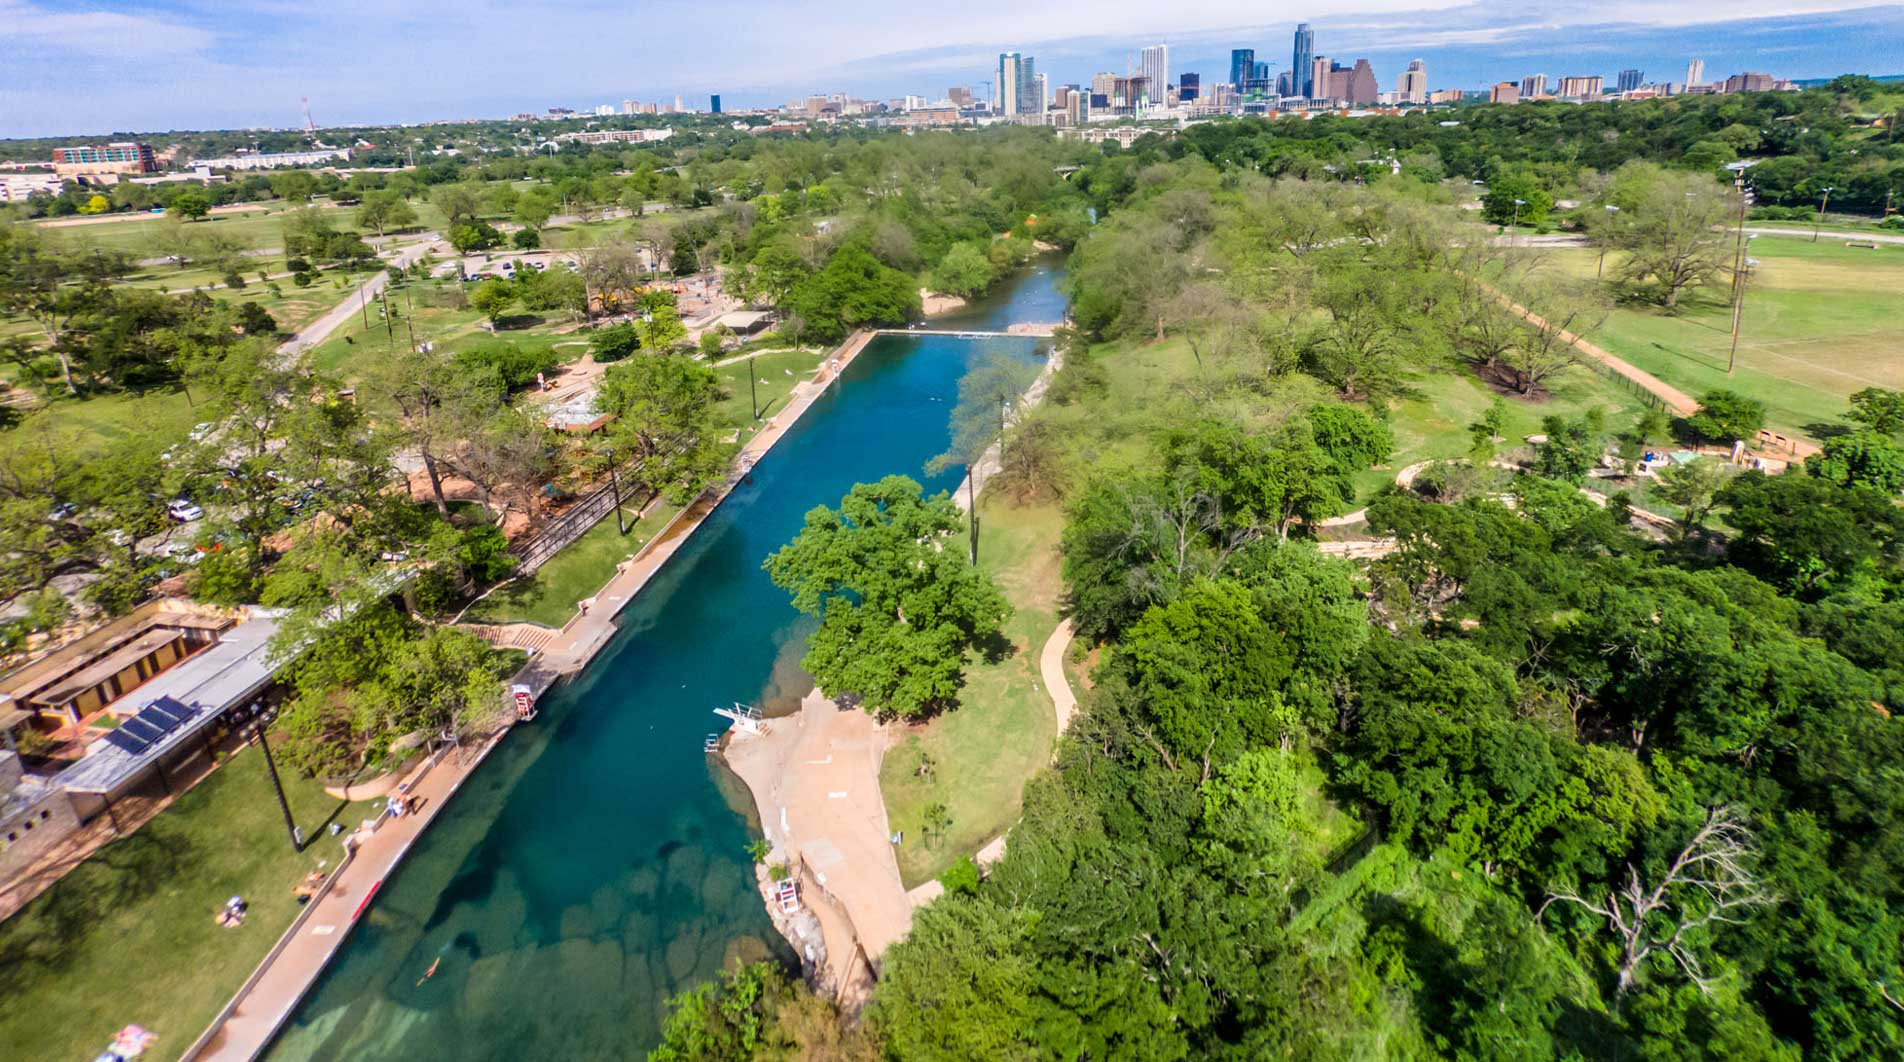 Barton Springs Pool A Texas Spring Fed Swimming Hole